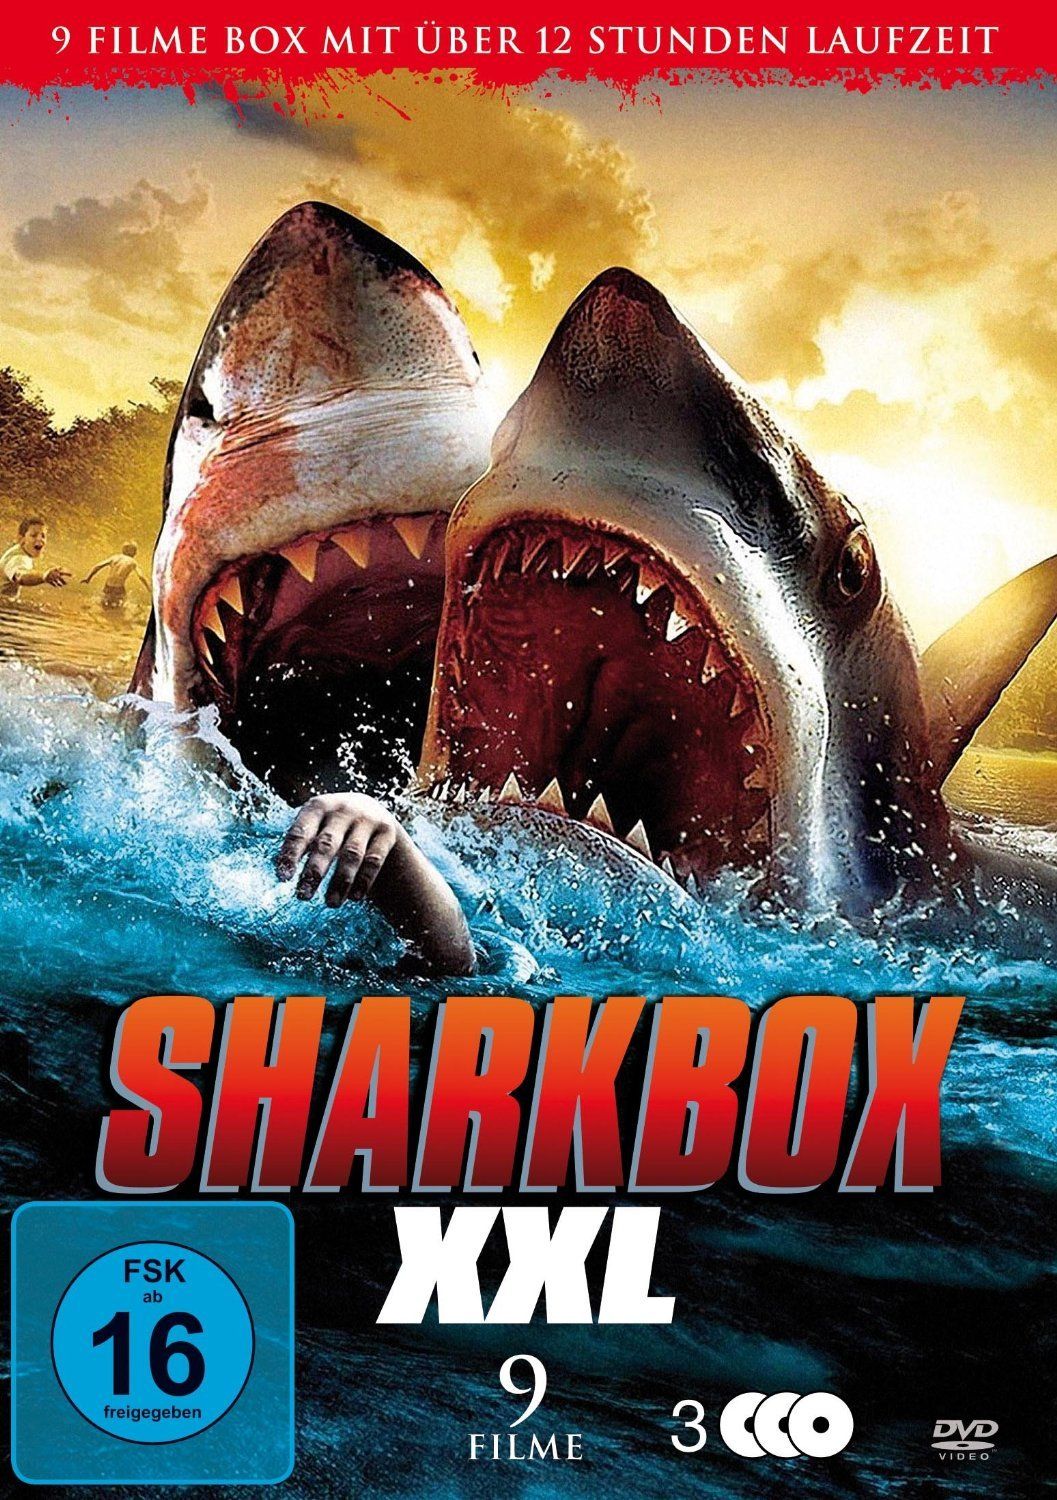 SHARKBOX XXL 9 Filme - 3 DVDs - incl Sharknado Alemania: Amazon.es ...